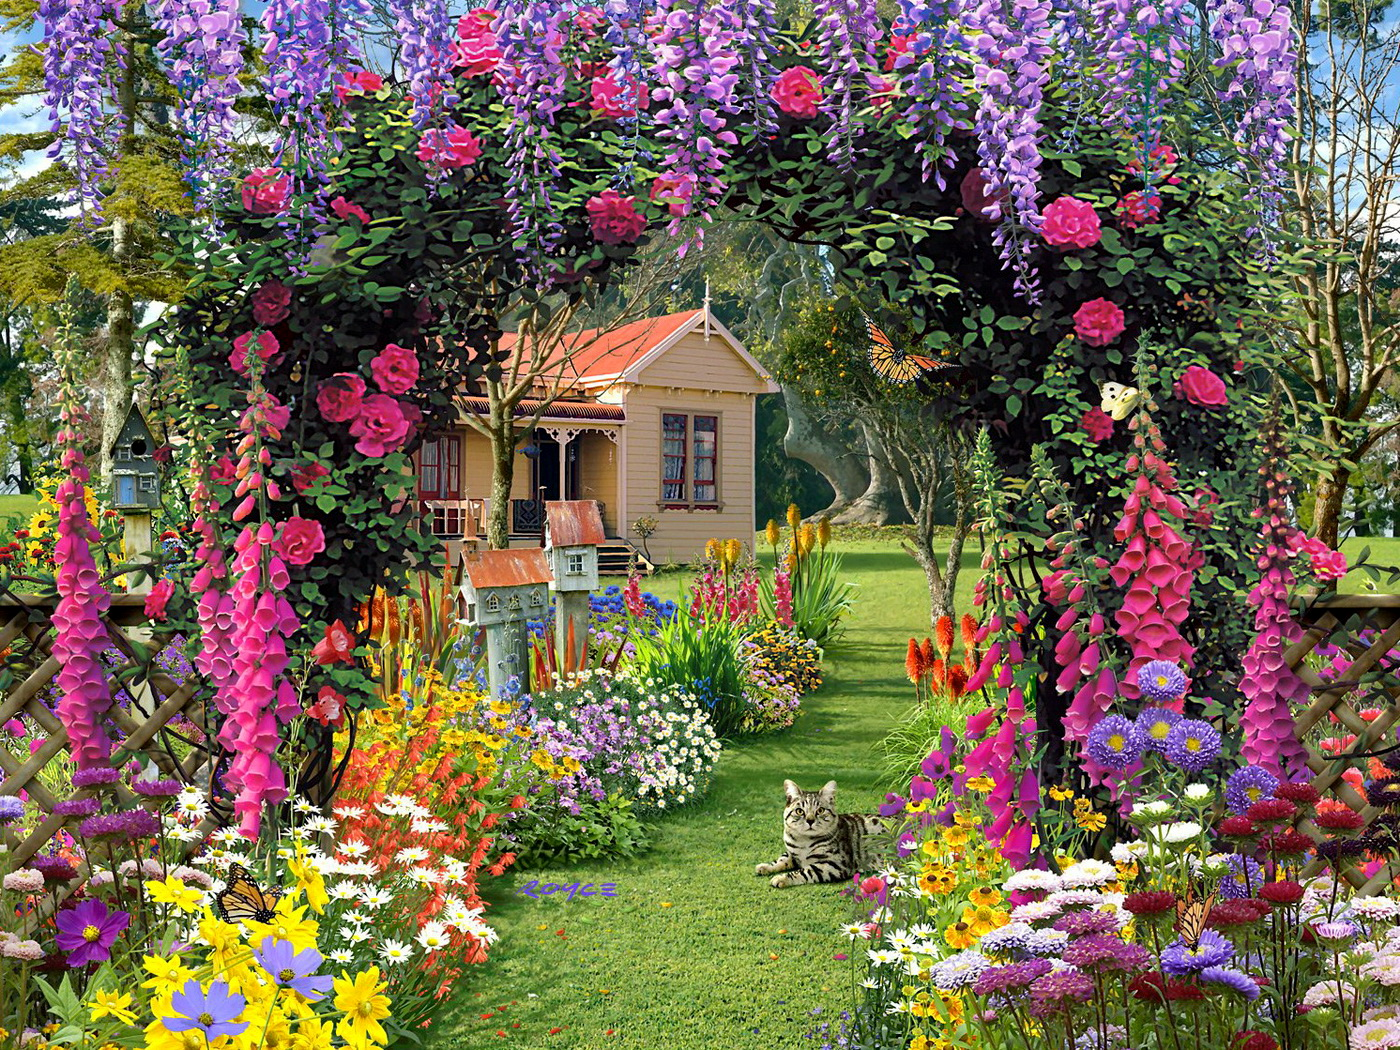 Flower Garden HD Wallpaper